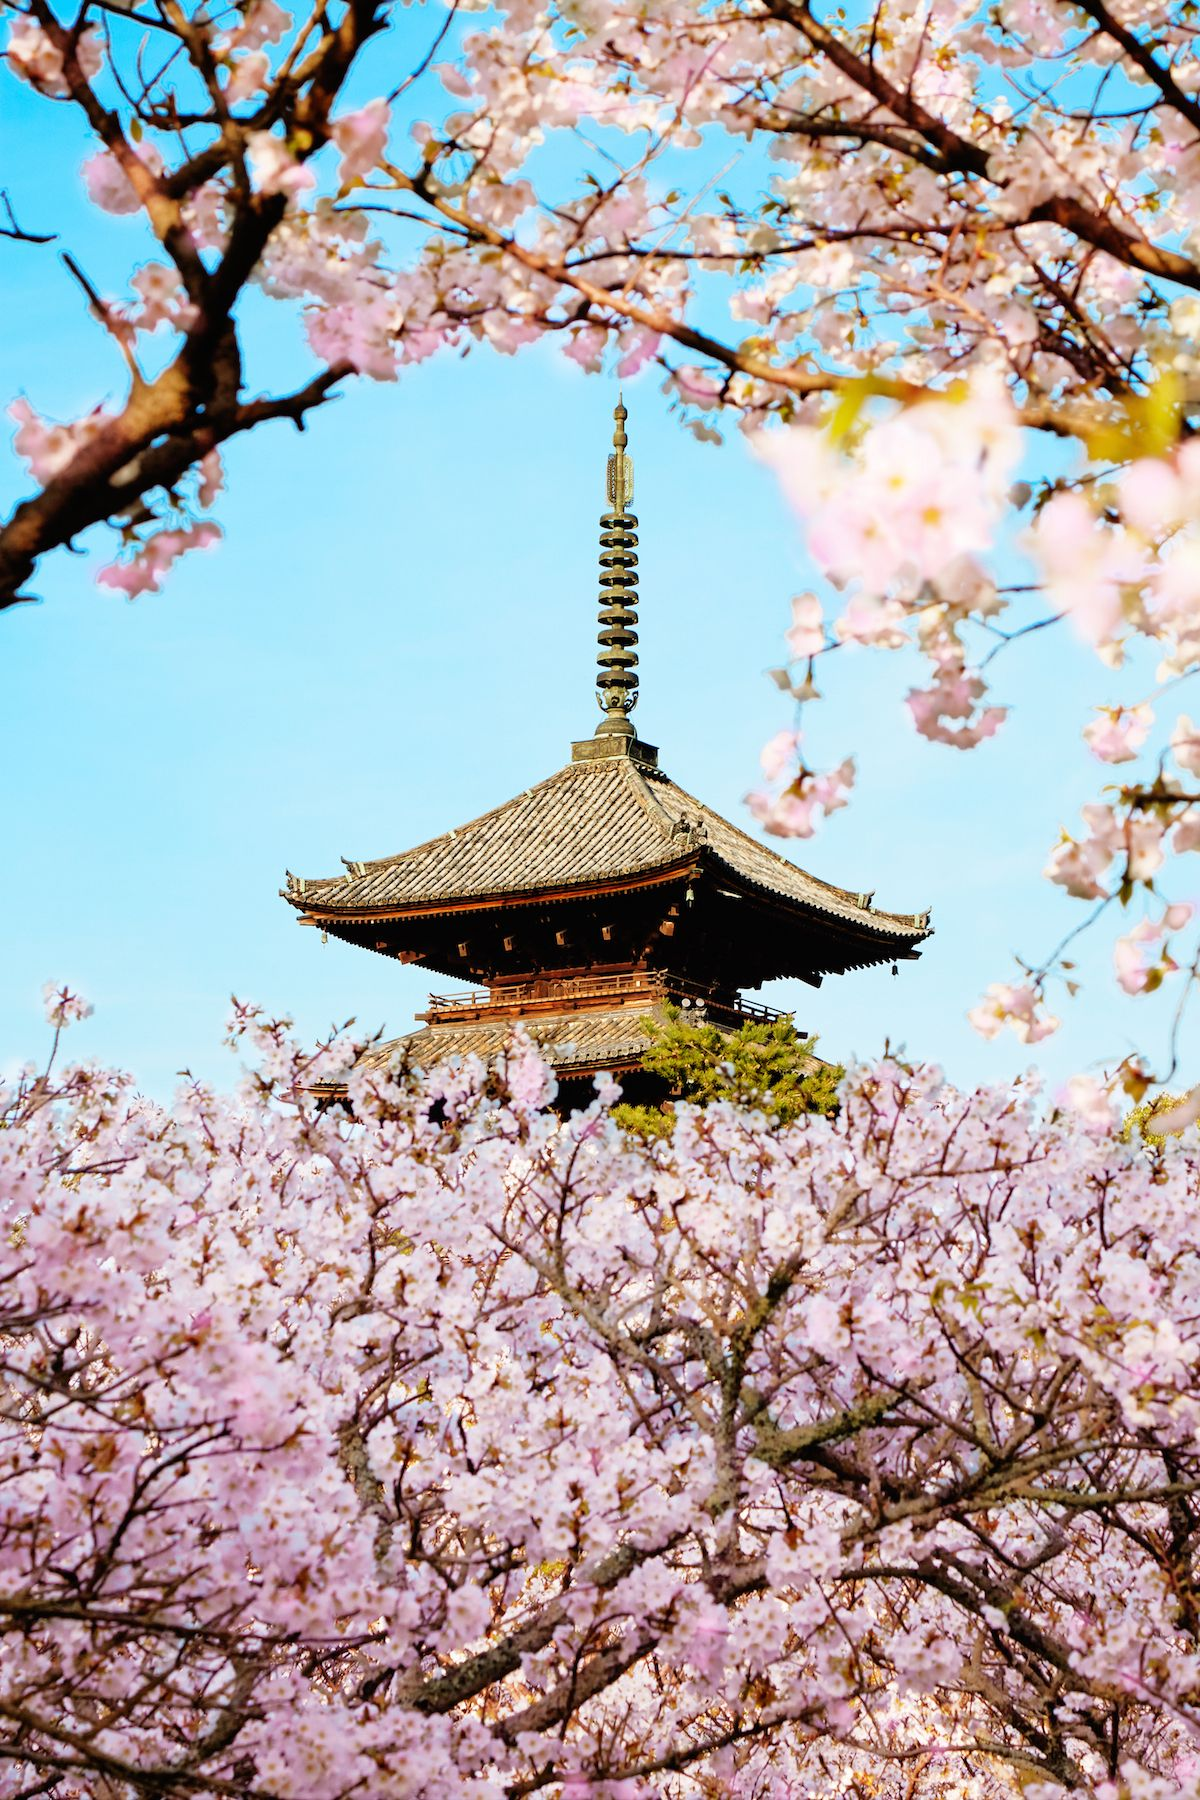 How To Experience Cherry Blossom Season In Tokyo Cherry Blossom Season Tokyo Tourism Amazing Destinations